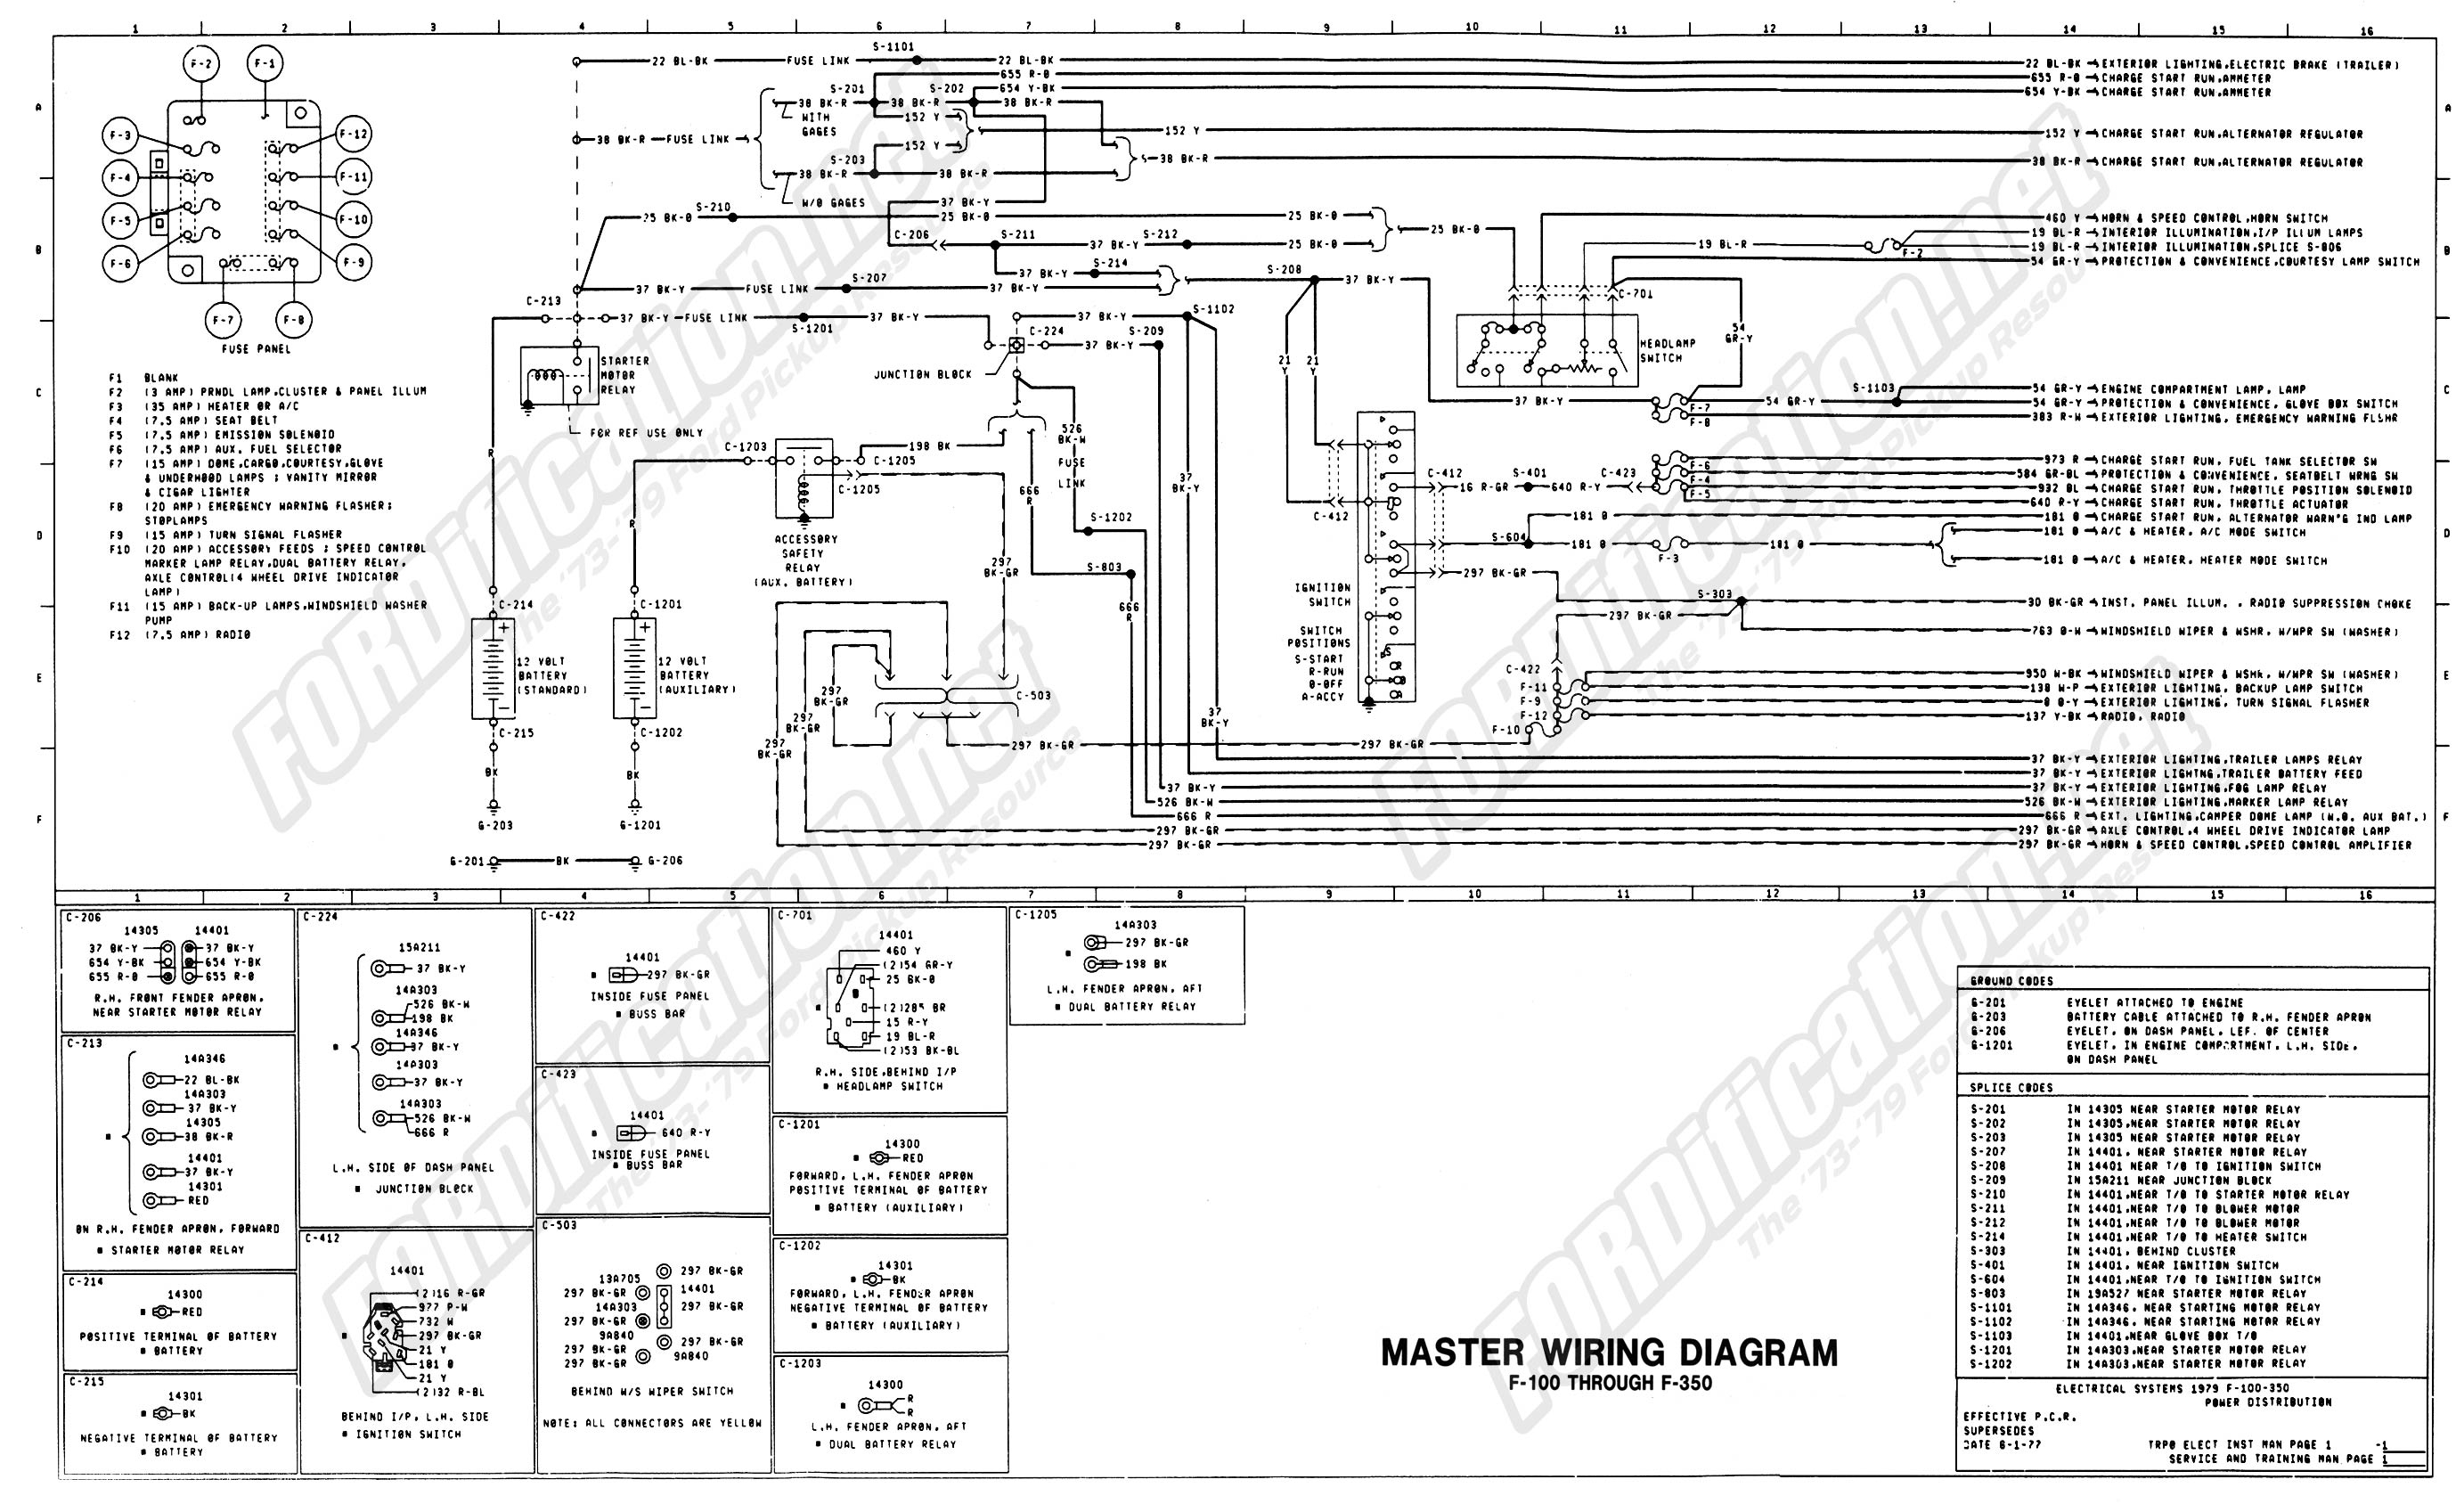 international truck wiring diagram | free wiring diagram international trucks wiring diagrams free international truck wiring diagrams free